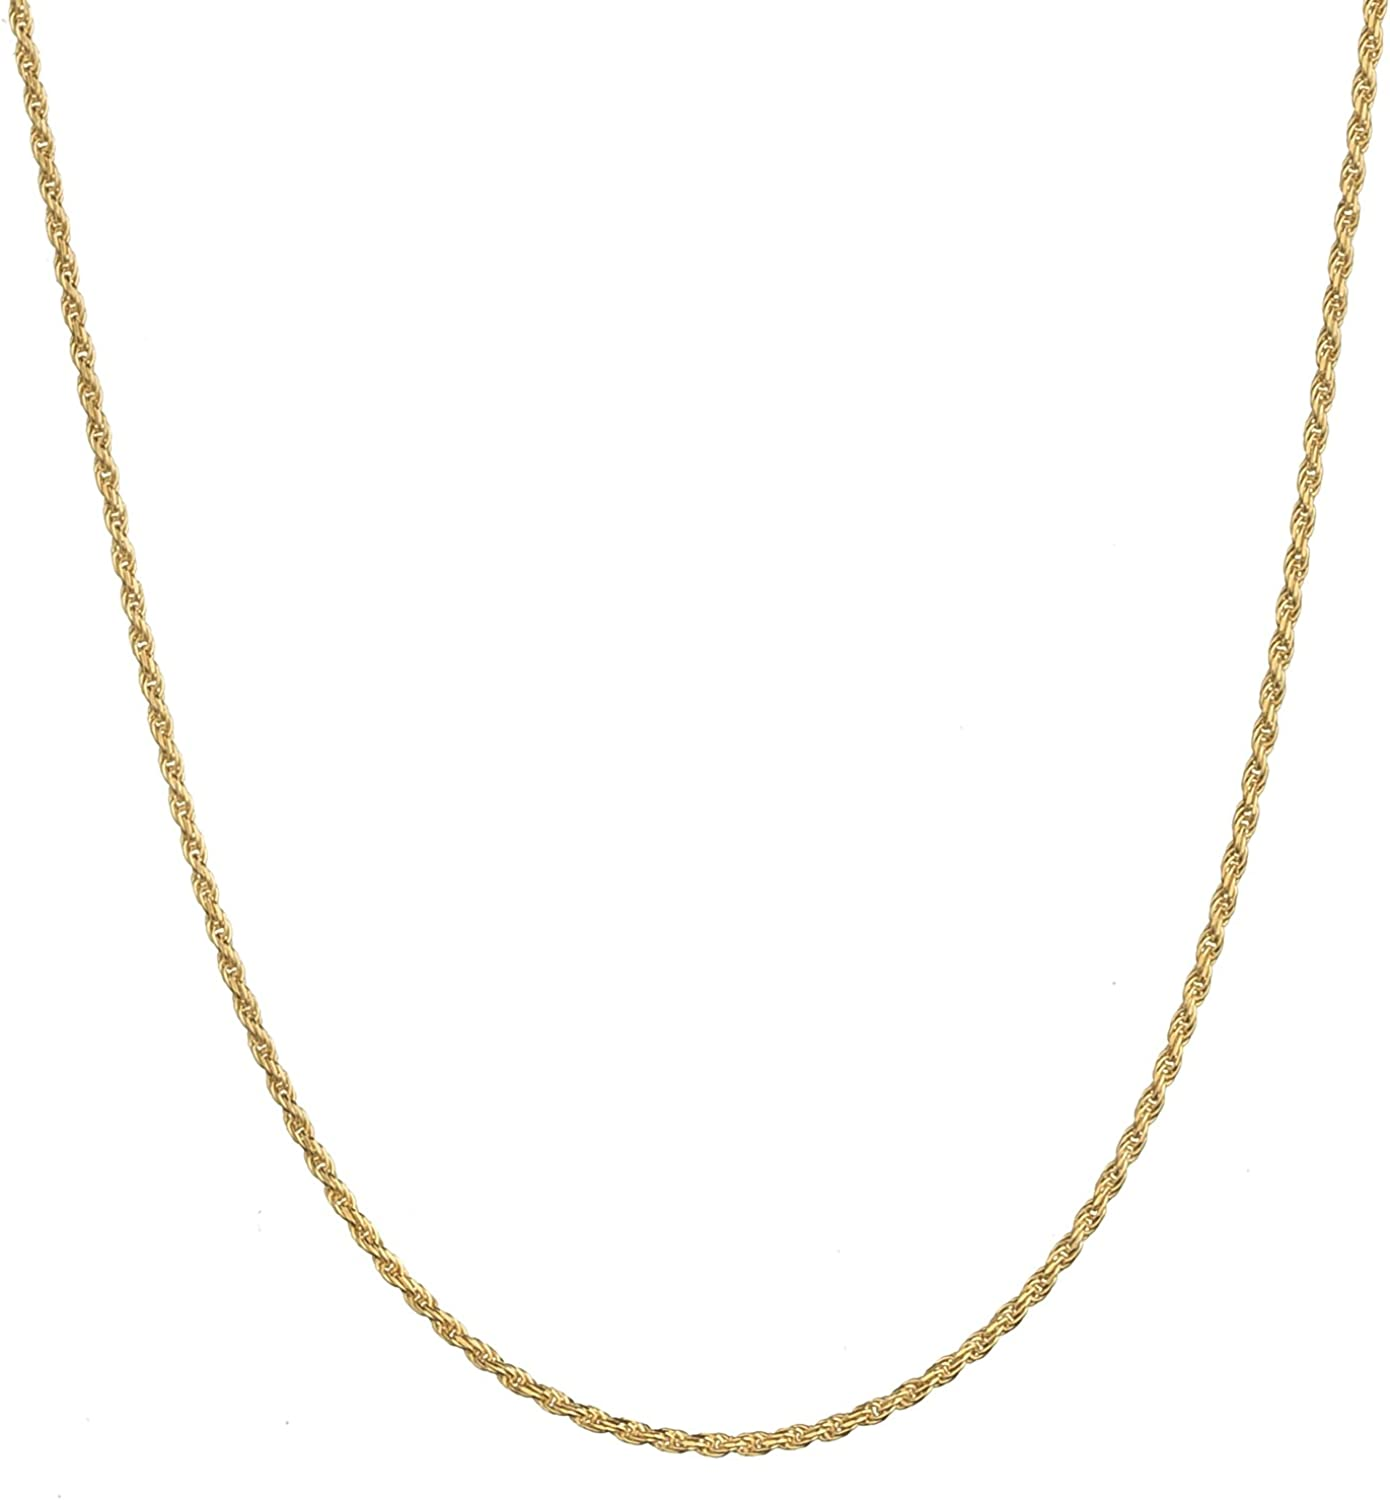 online shop 18K Gold Flashed Excellence Sterling Silver Chain Neckla 1.6mm Italian Rope